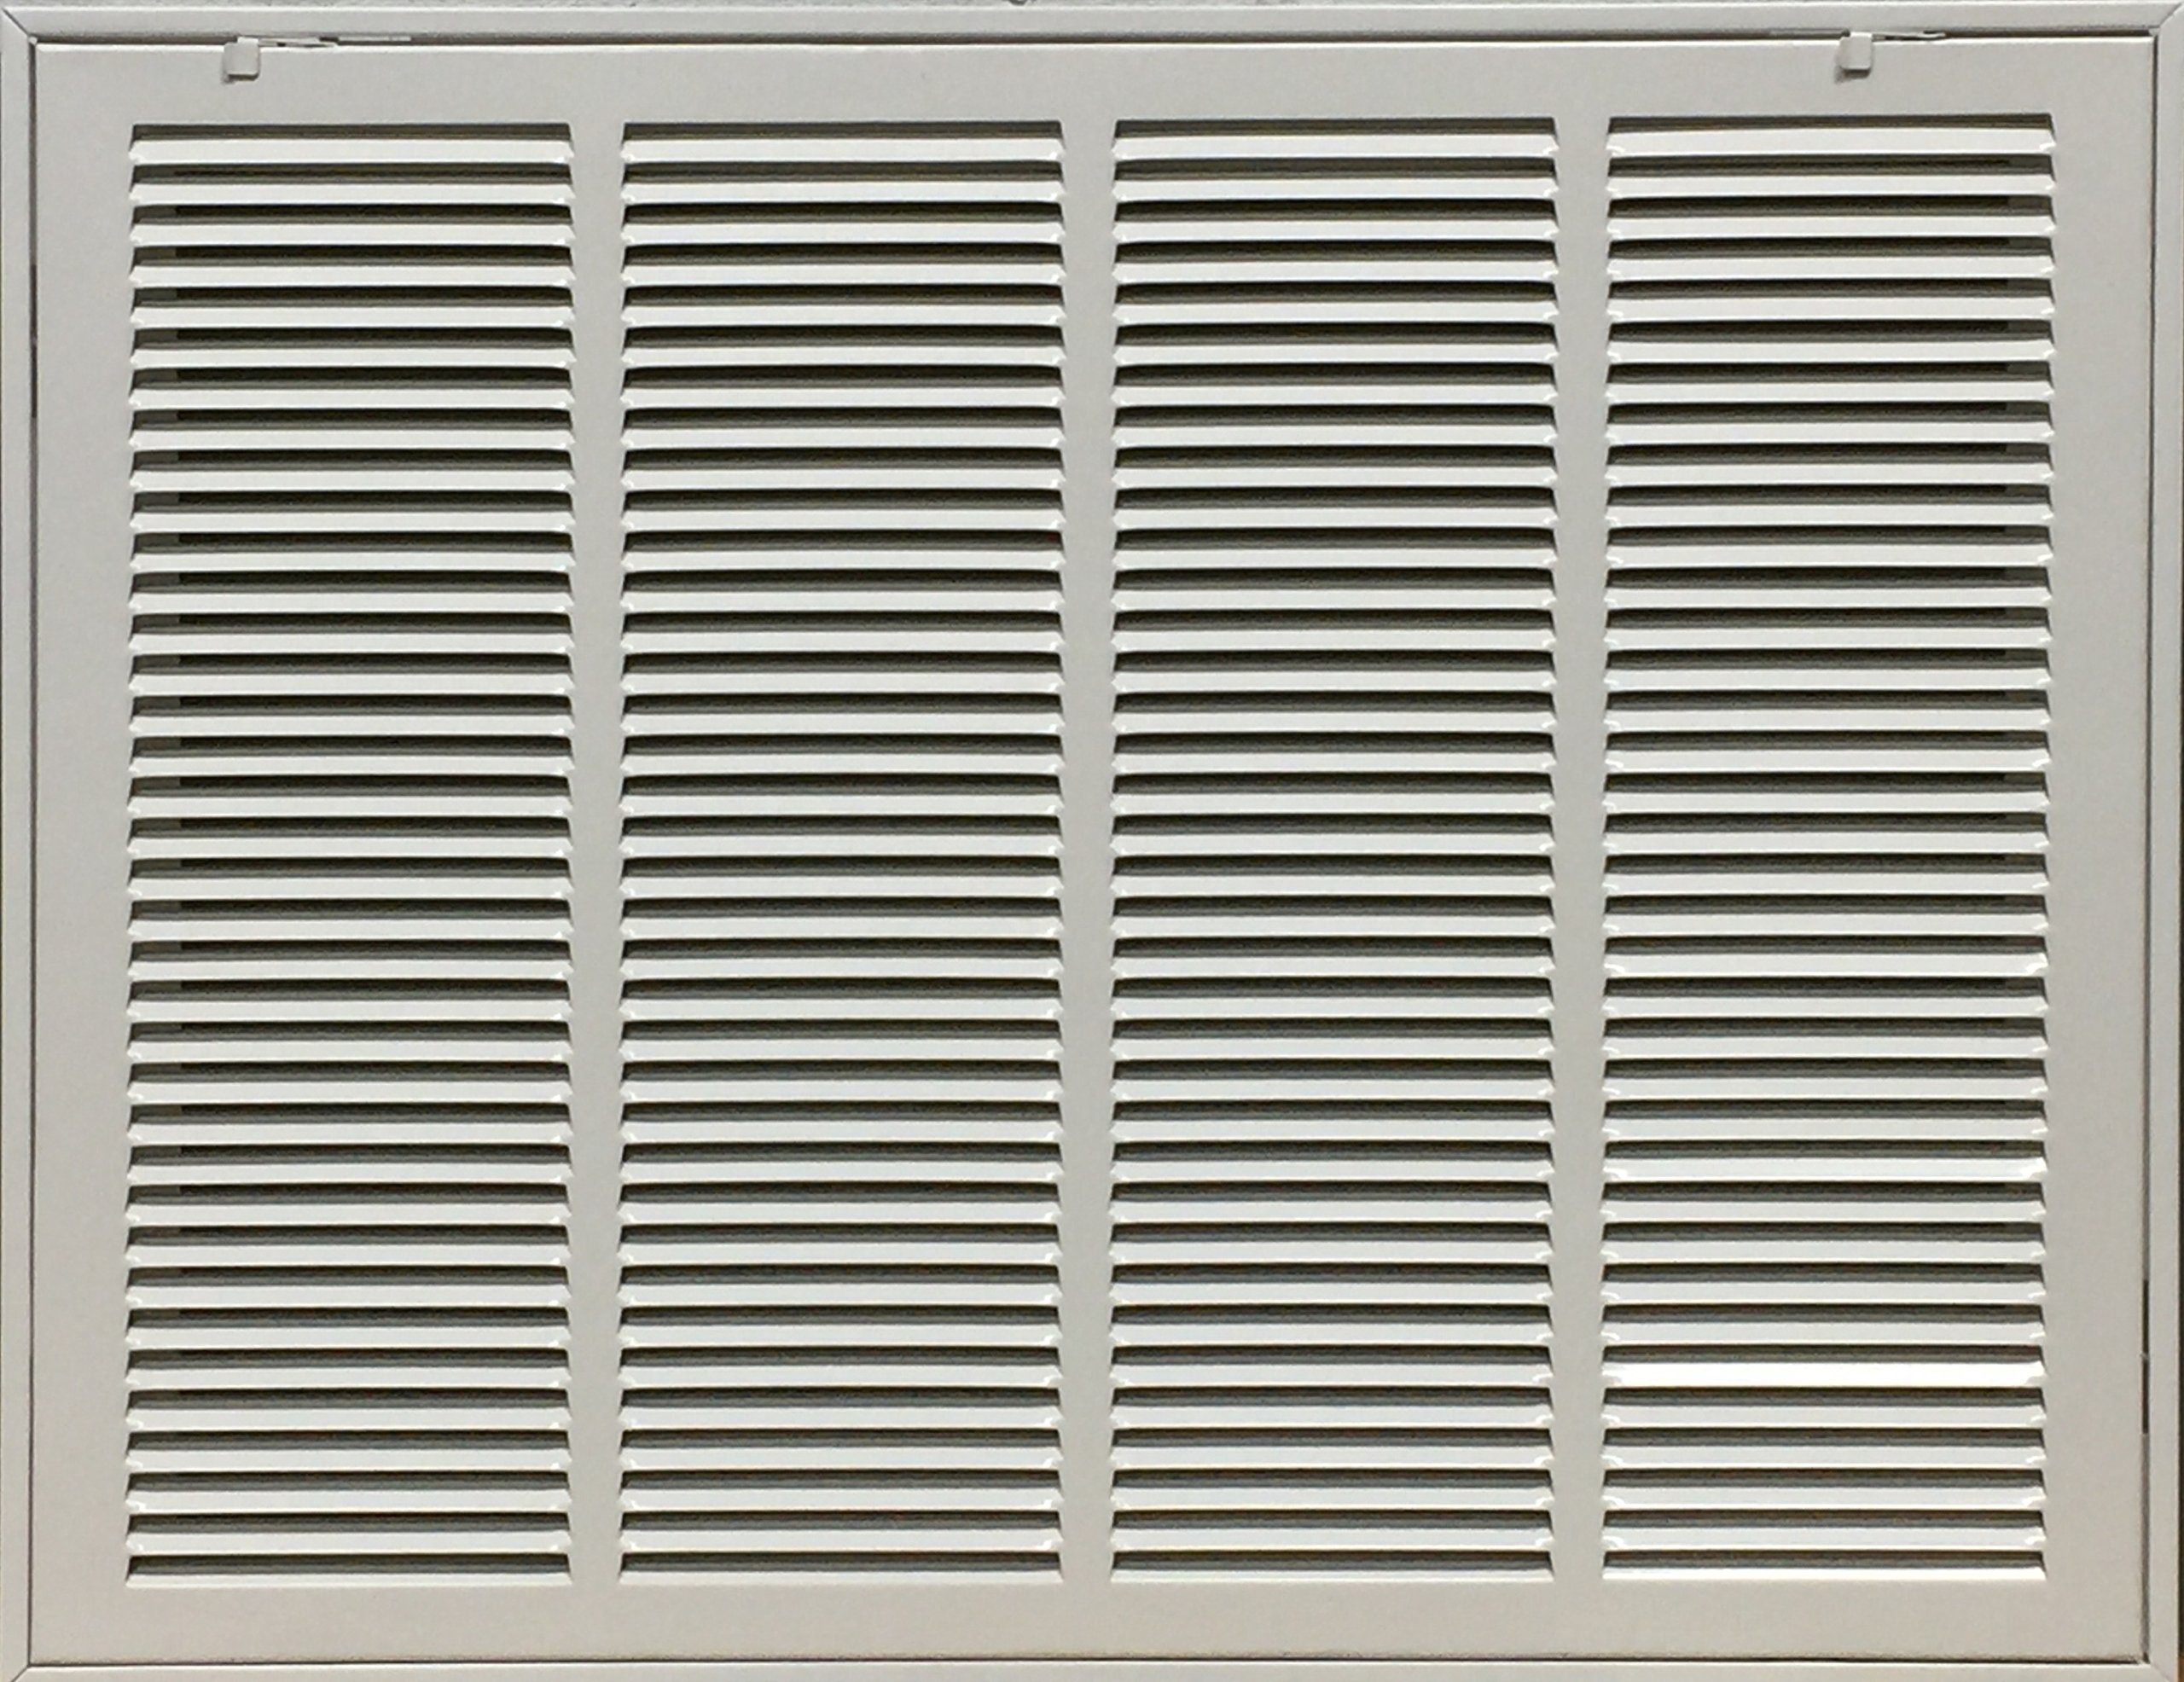 Steel Return Filter Grille Stamped-Face 24'' X 18'' (duct opening size)